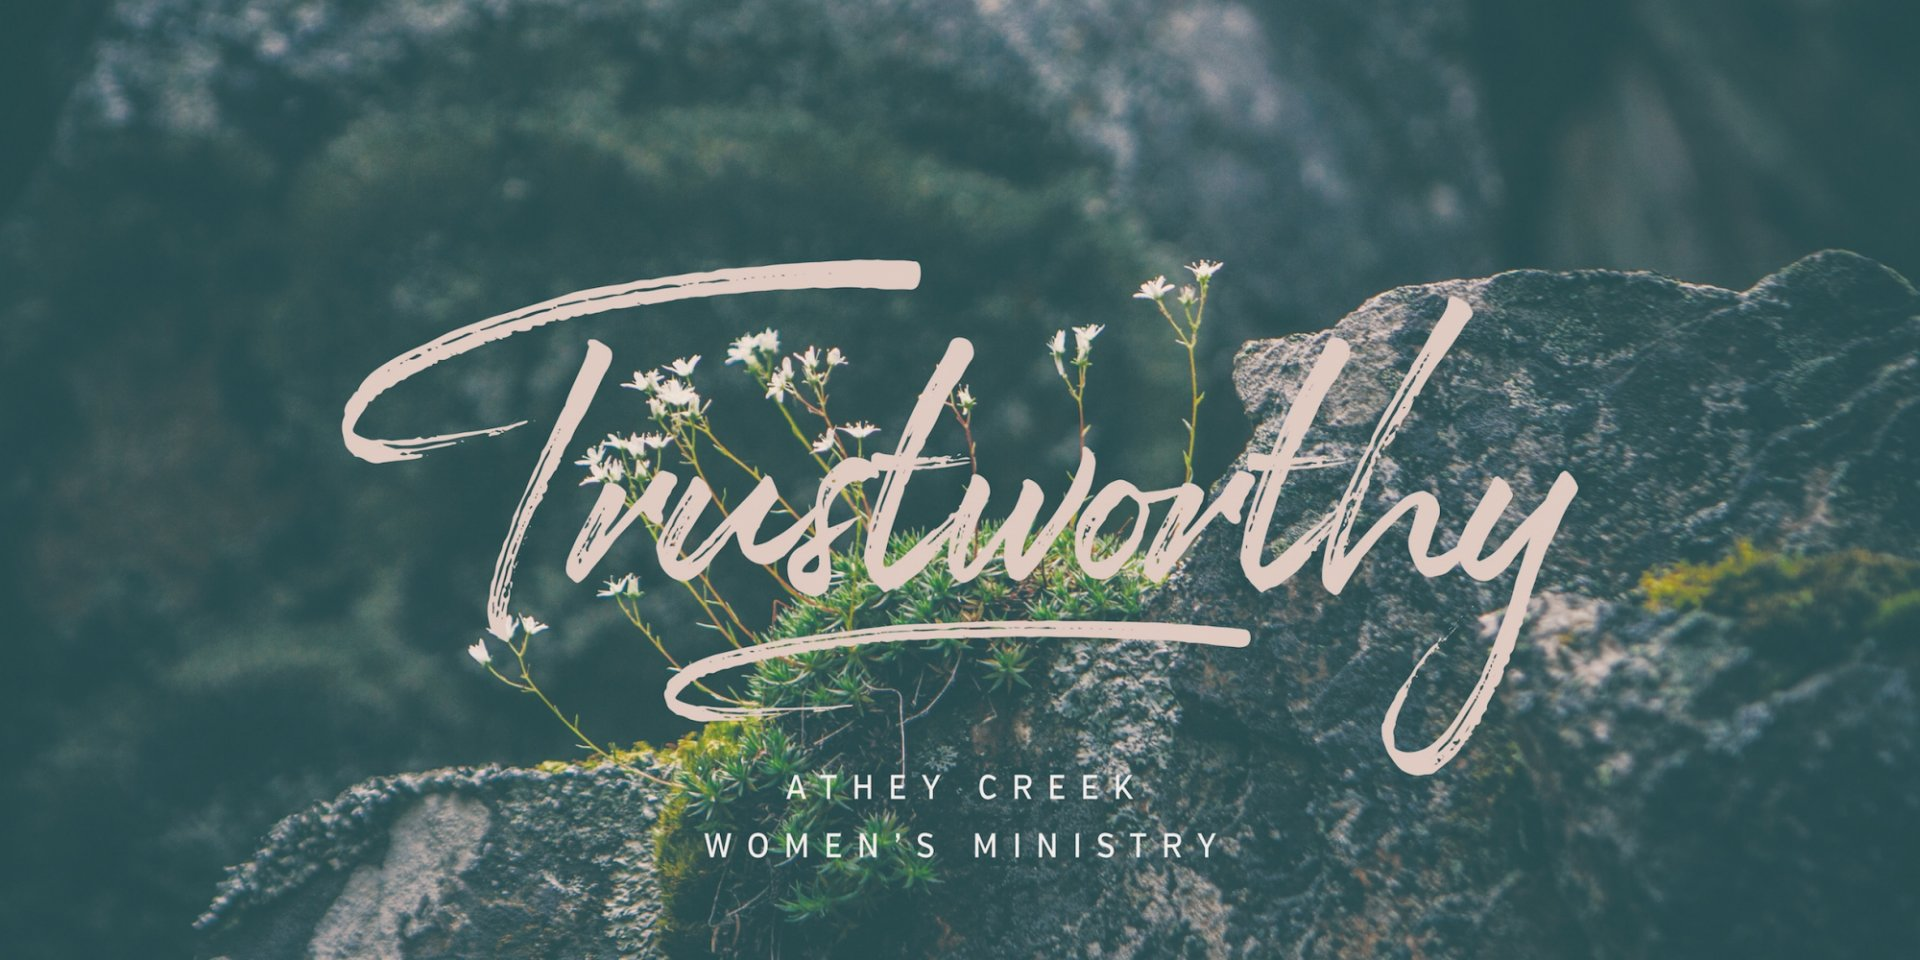 Poster forTrustworthy | Trustworthy in Temptation